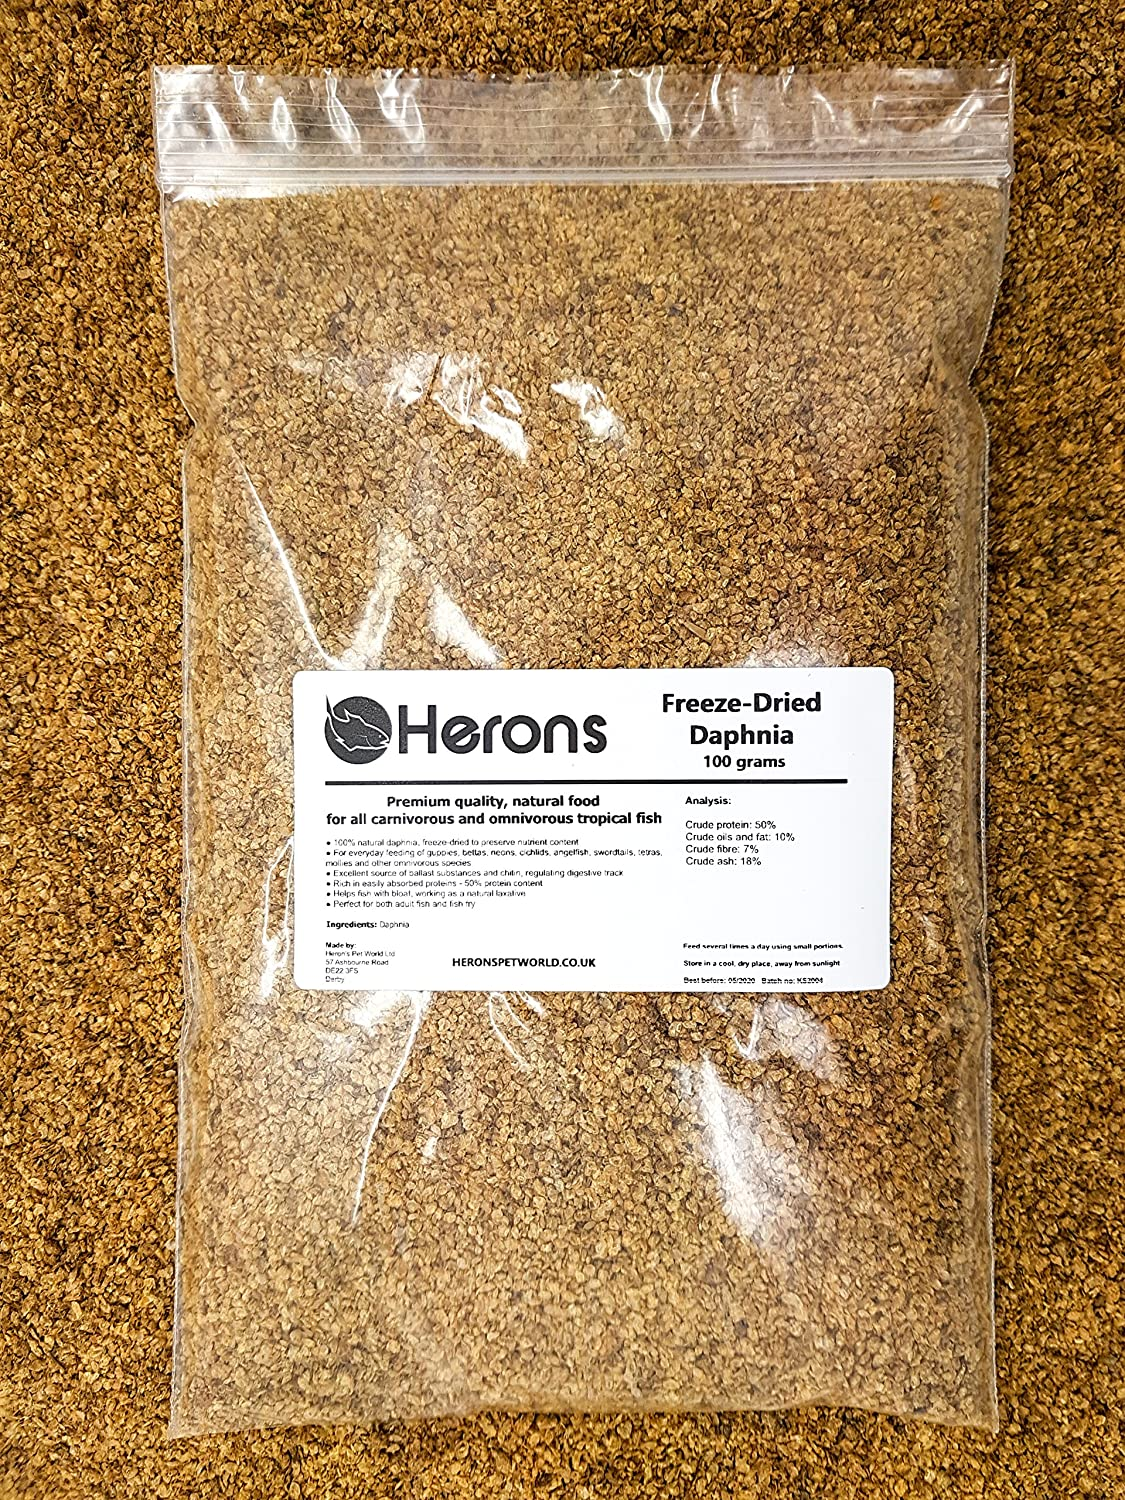 HERONS Freeze Dried Daphnia [100g] CICHLID GOLDFISH KOI FRY TROPICAL FISH FOOD Heron's Pet World